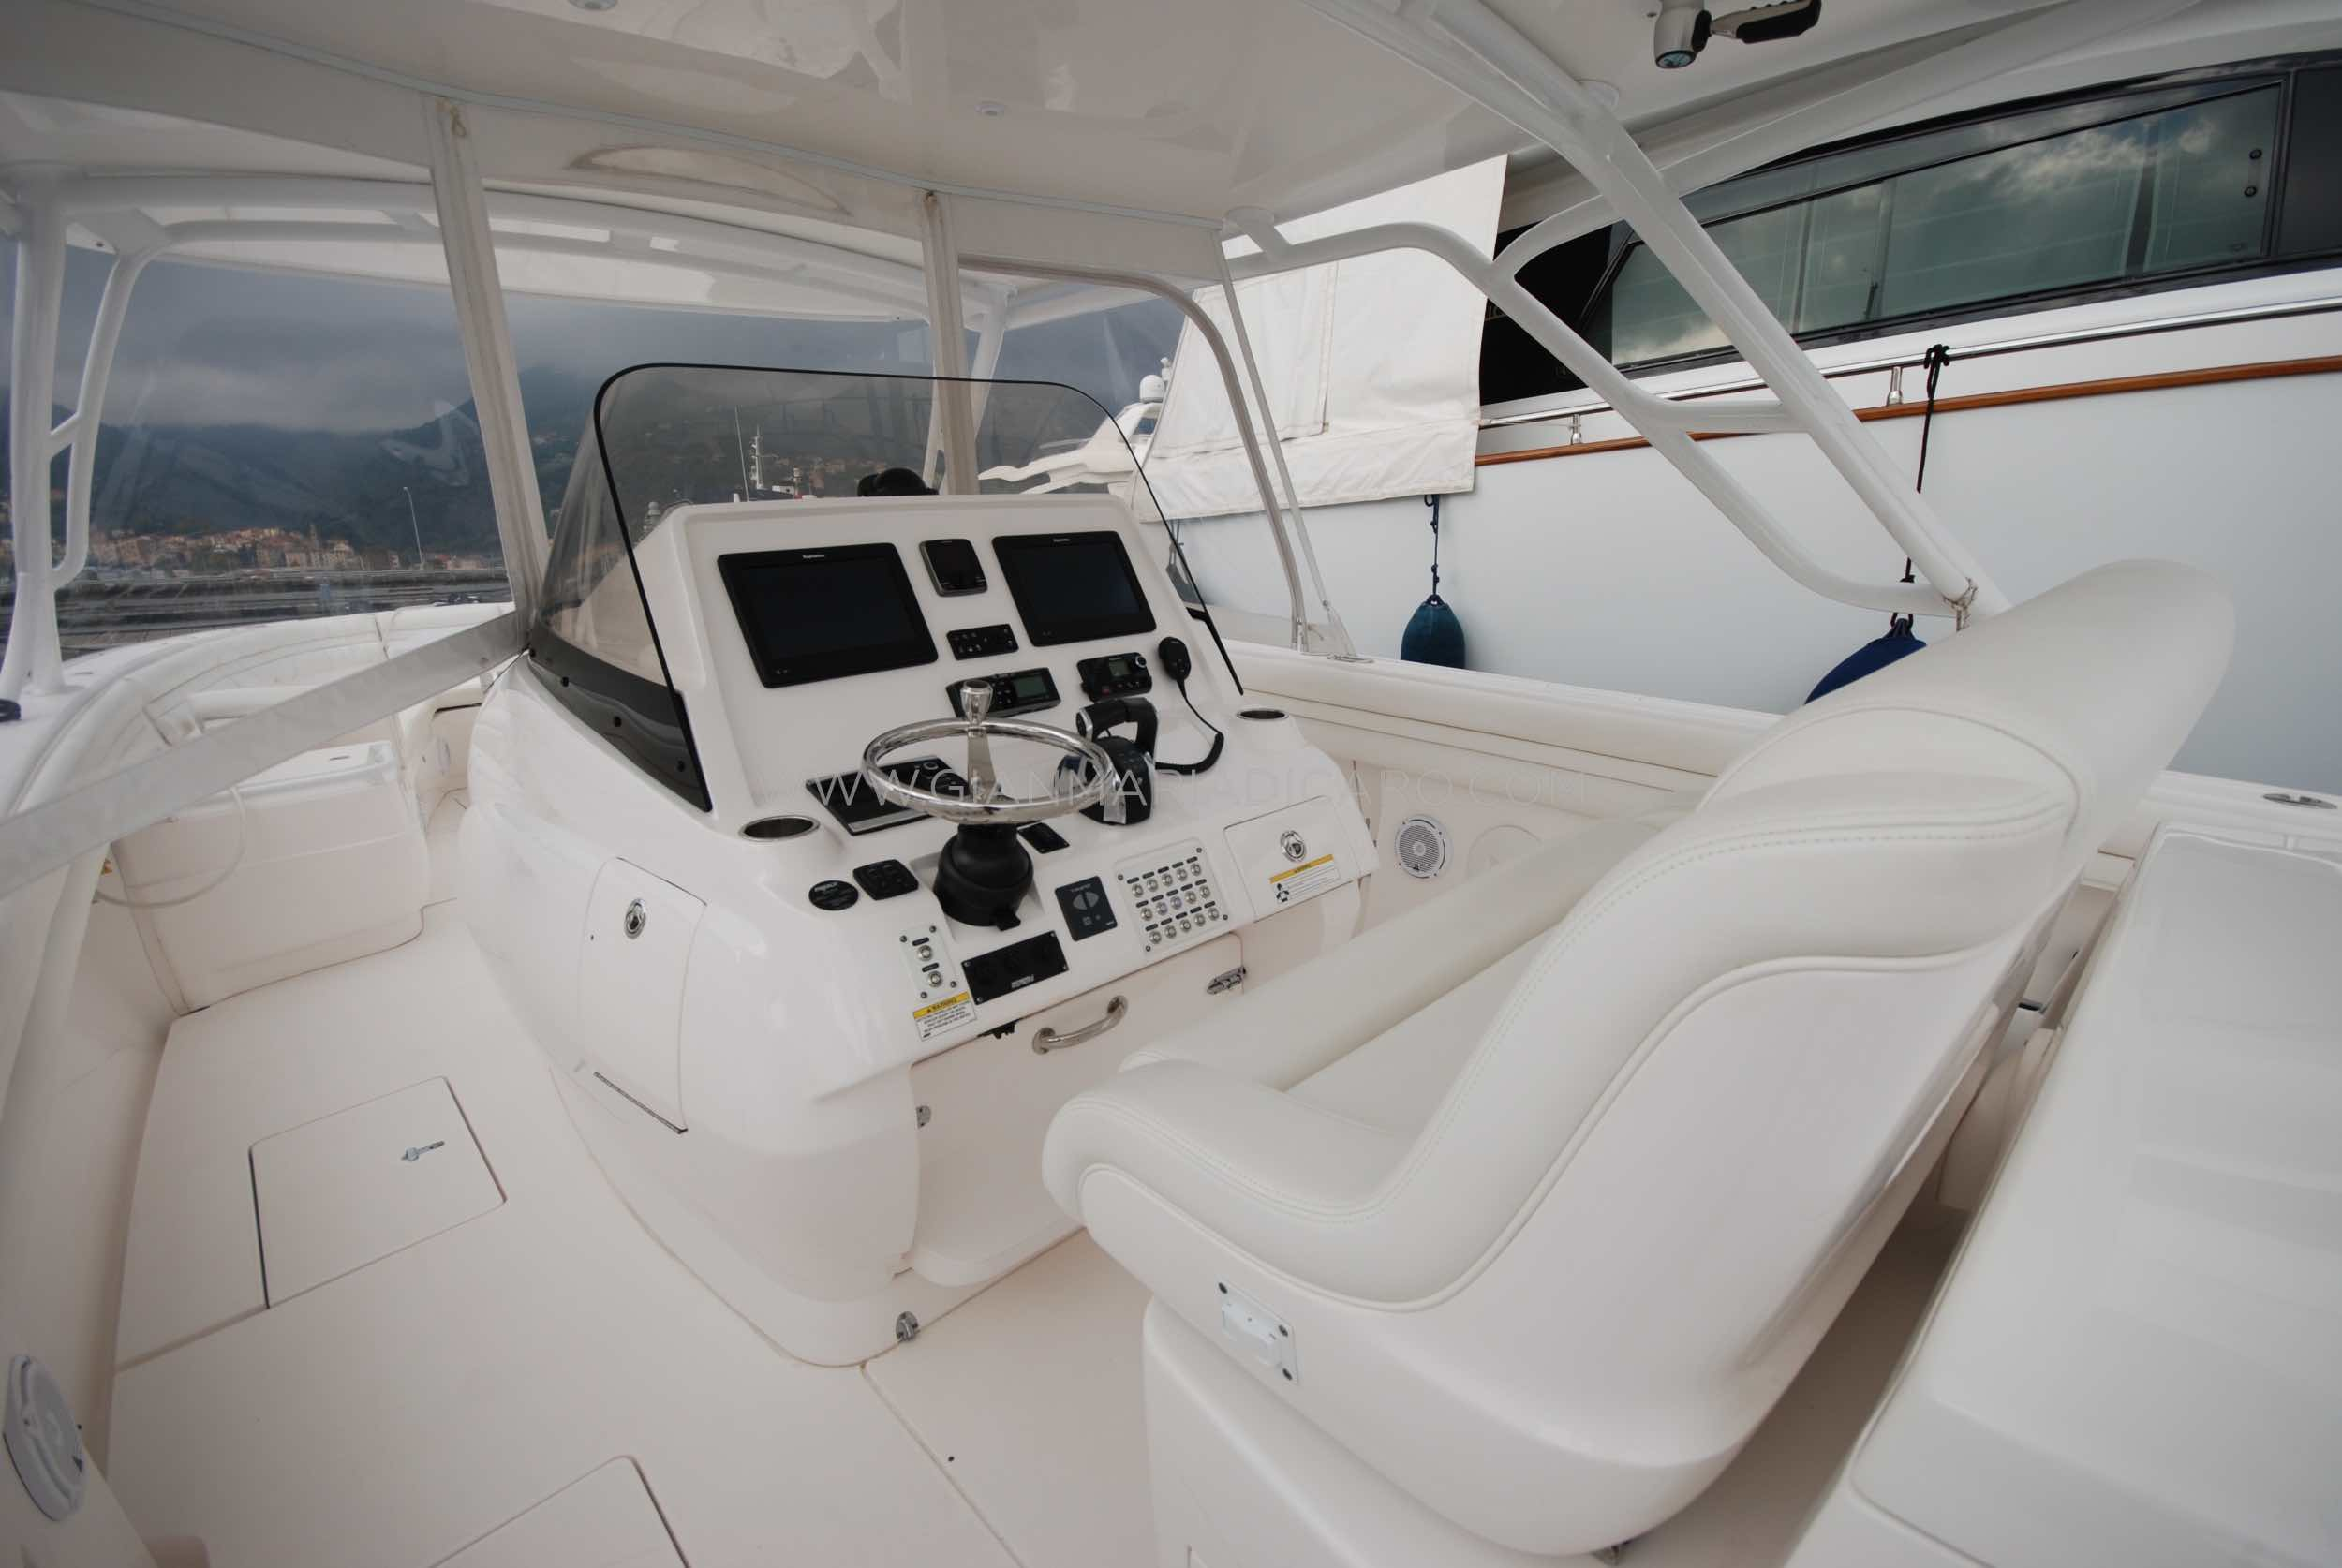 intrepid-400-centre-console-z-blonde-for-sale-9.jpg